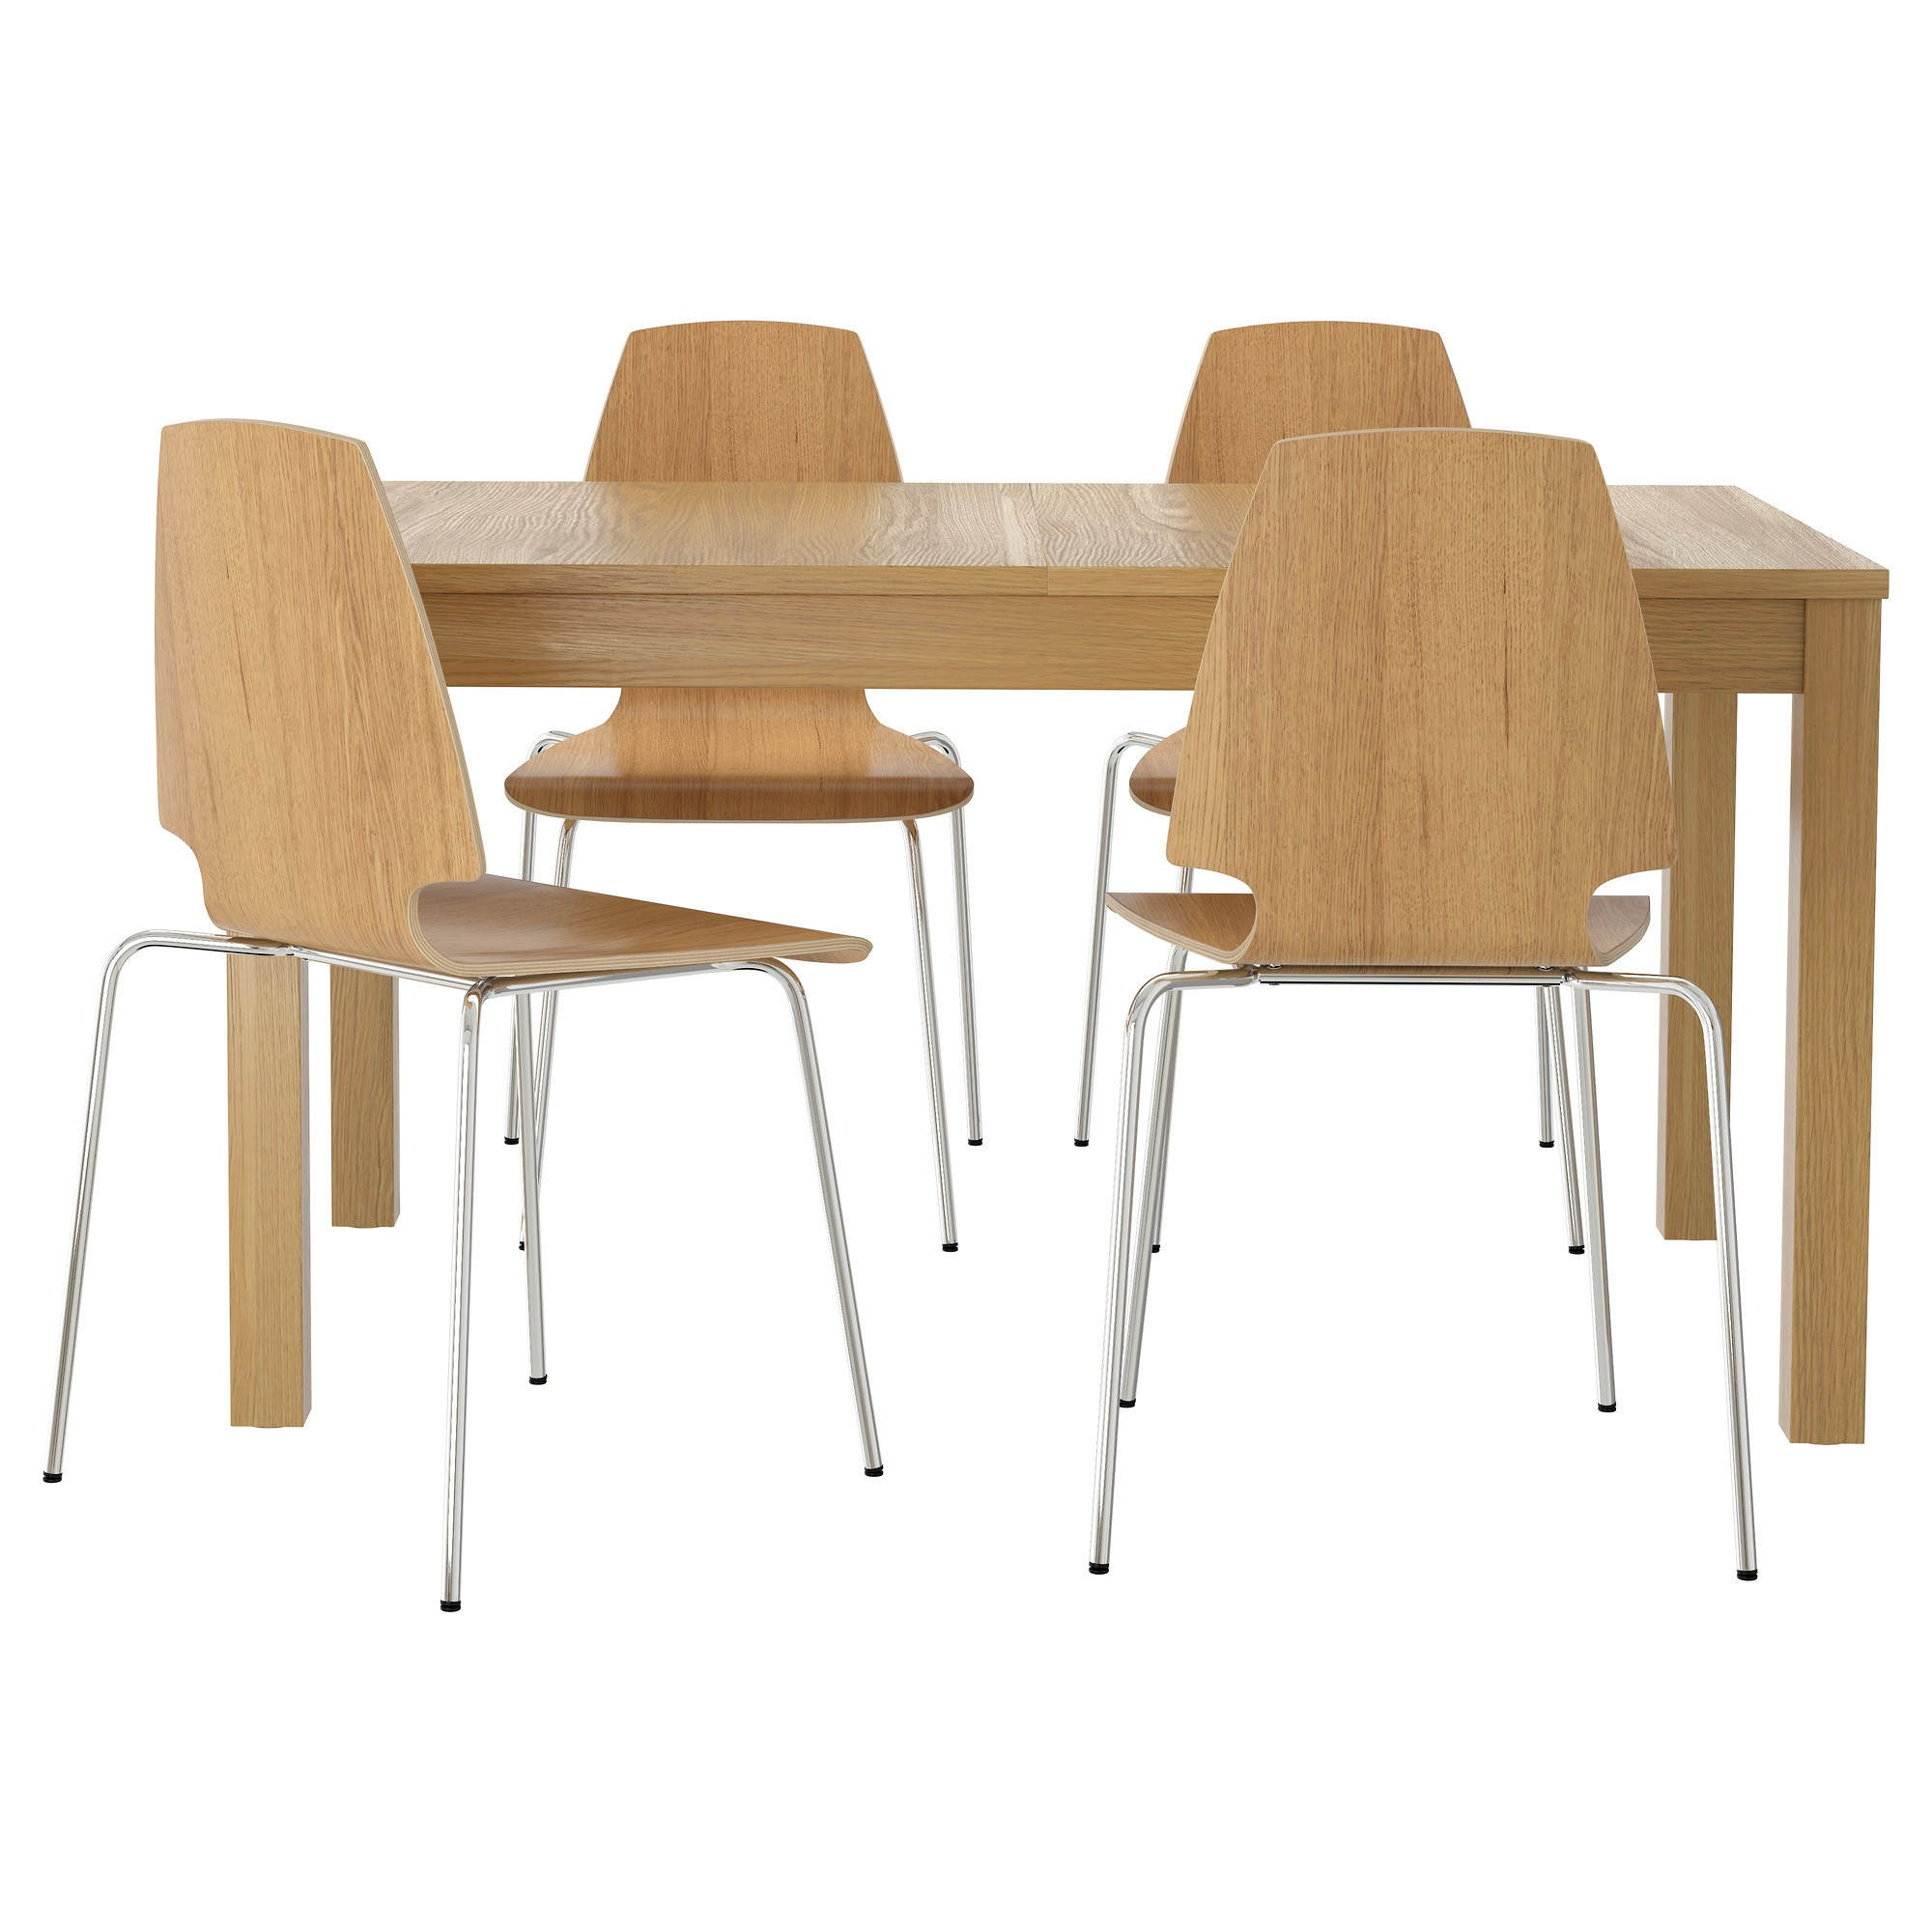 ikea kitchen chairs kitchen chairs ikea Ikea Round Dining Room Table And Chairs Best Ikea Ideas Ikea Kitchen Chairs